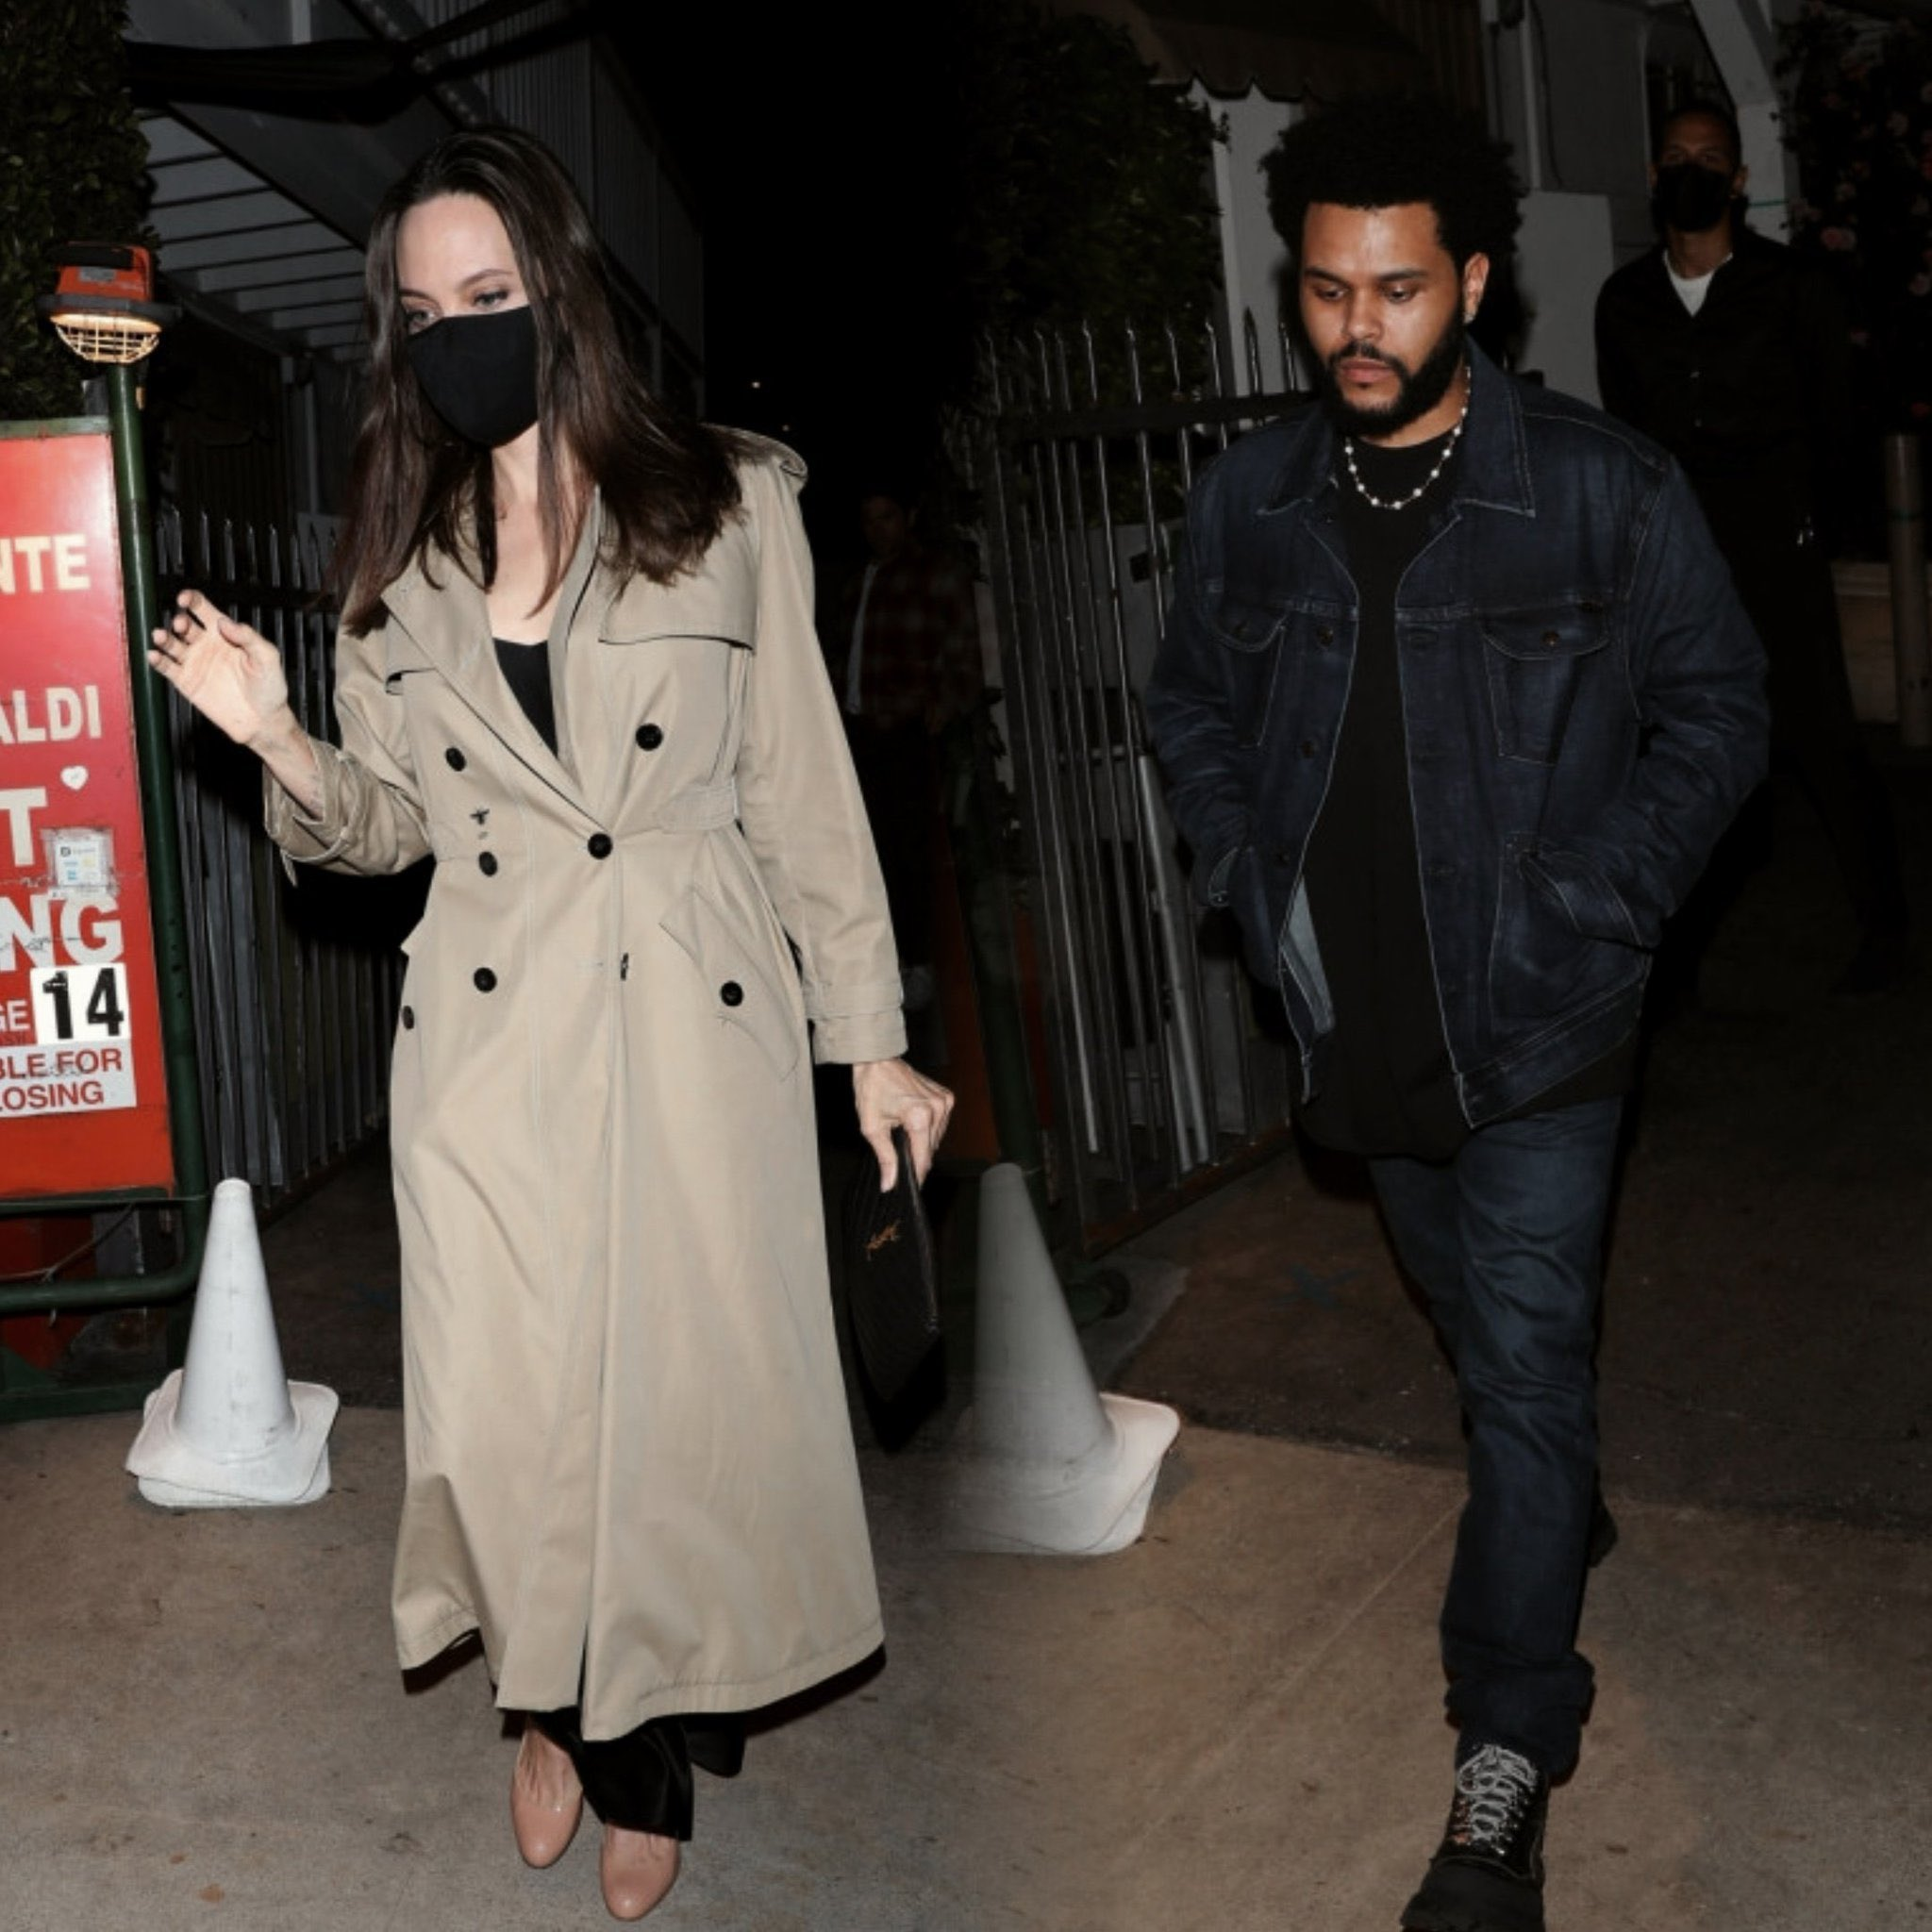 Angelina Jolie And Weeknd: Relationship Confirmed! - WTTSPOD